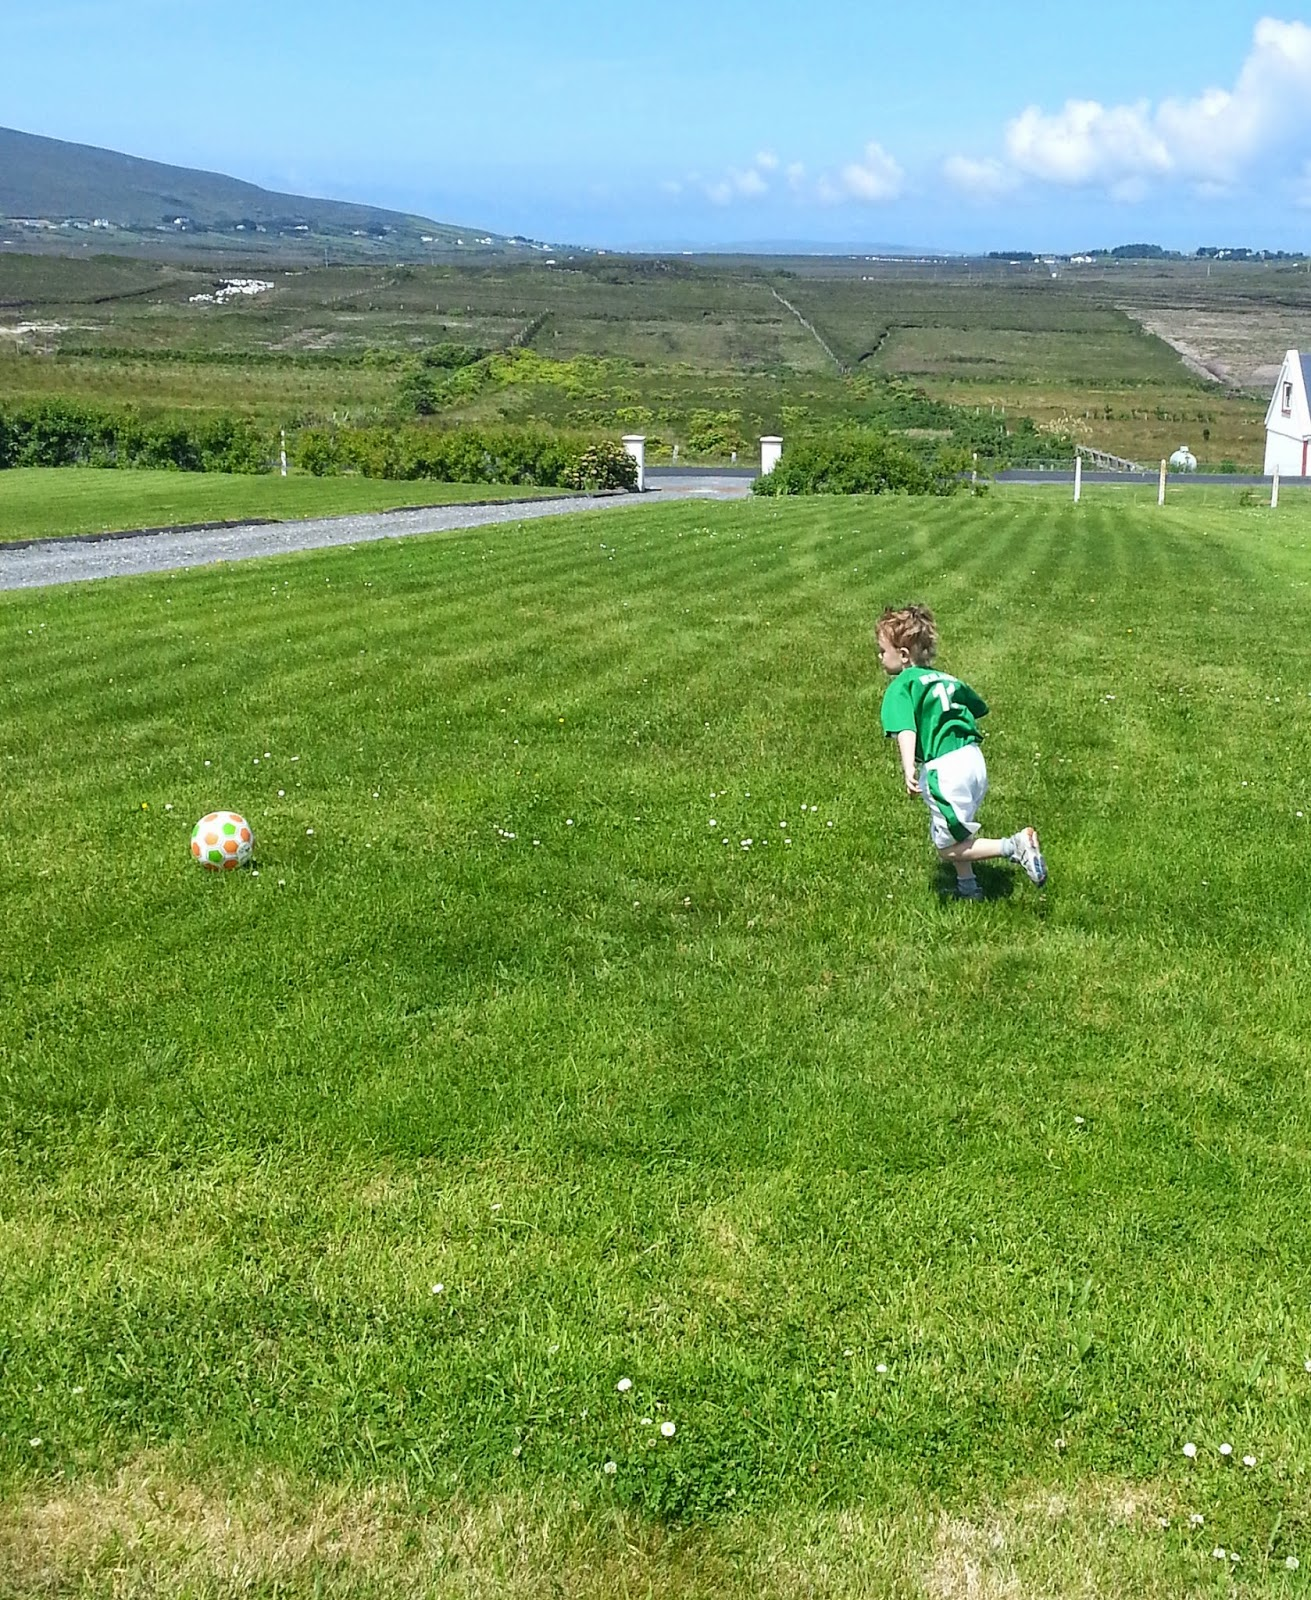 young boy in Ireland kit kicking Ireland ball on beautiful green lawn, blue sky in the background with candyfloss clouds